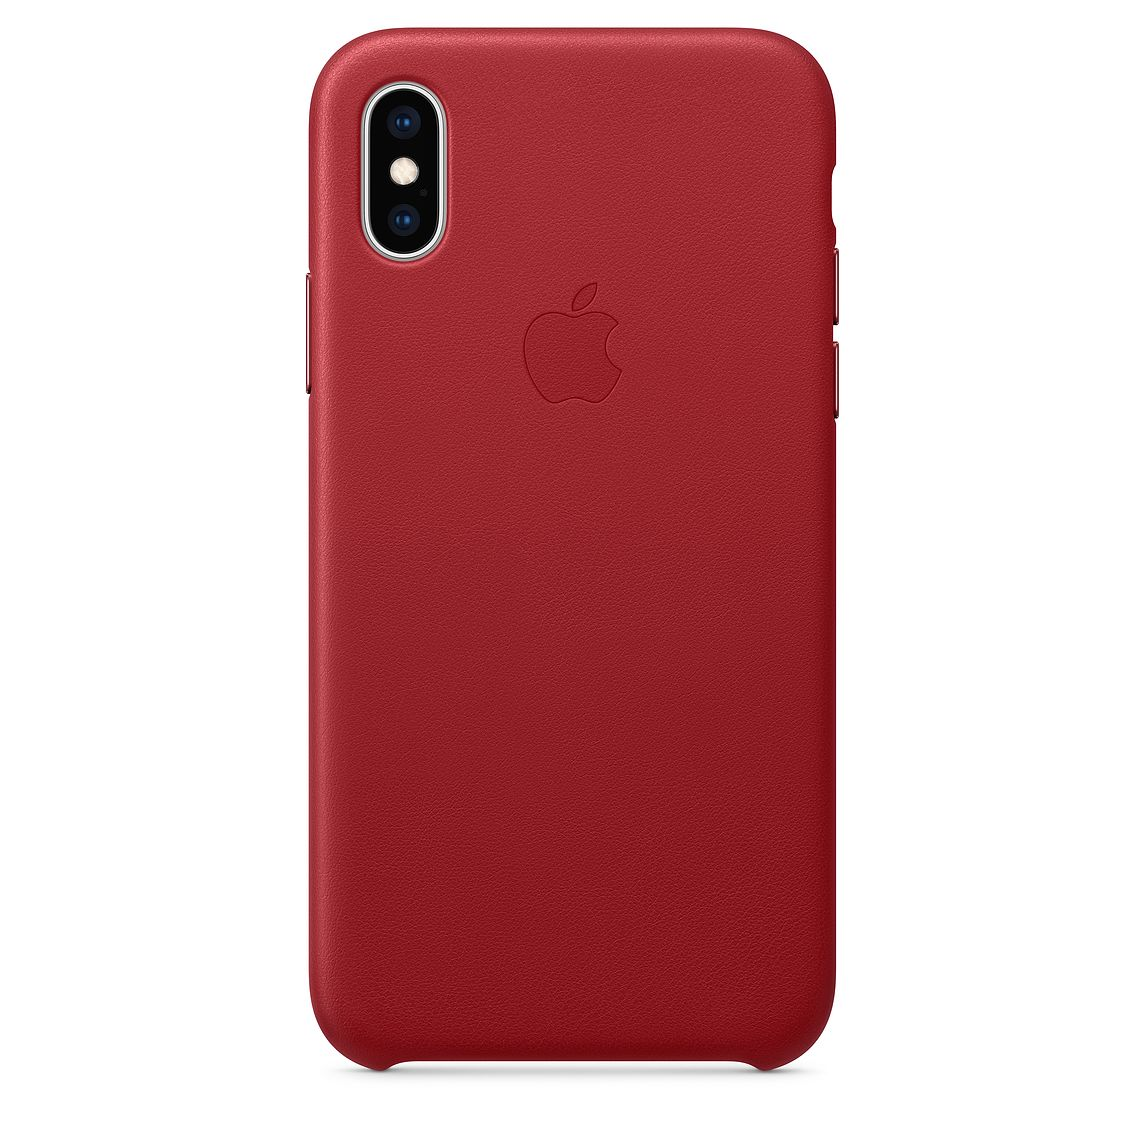 iPhone XS Max Leather Case Red MRWQ2FE/A